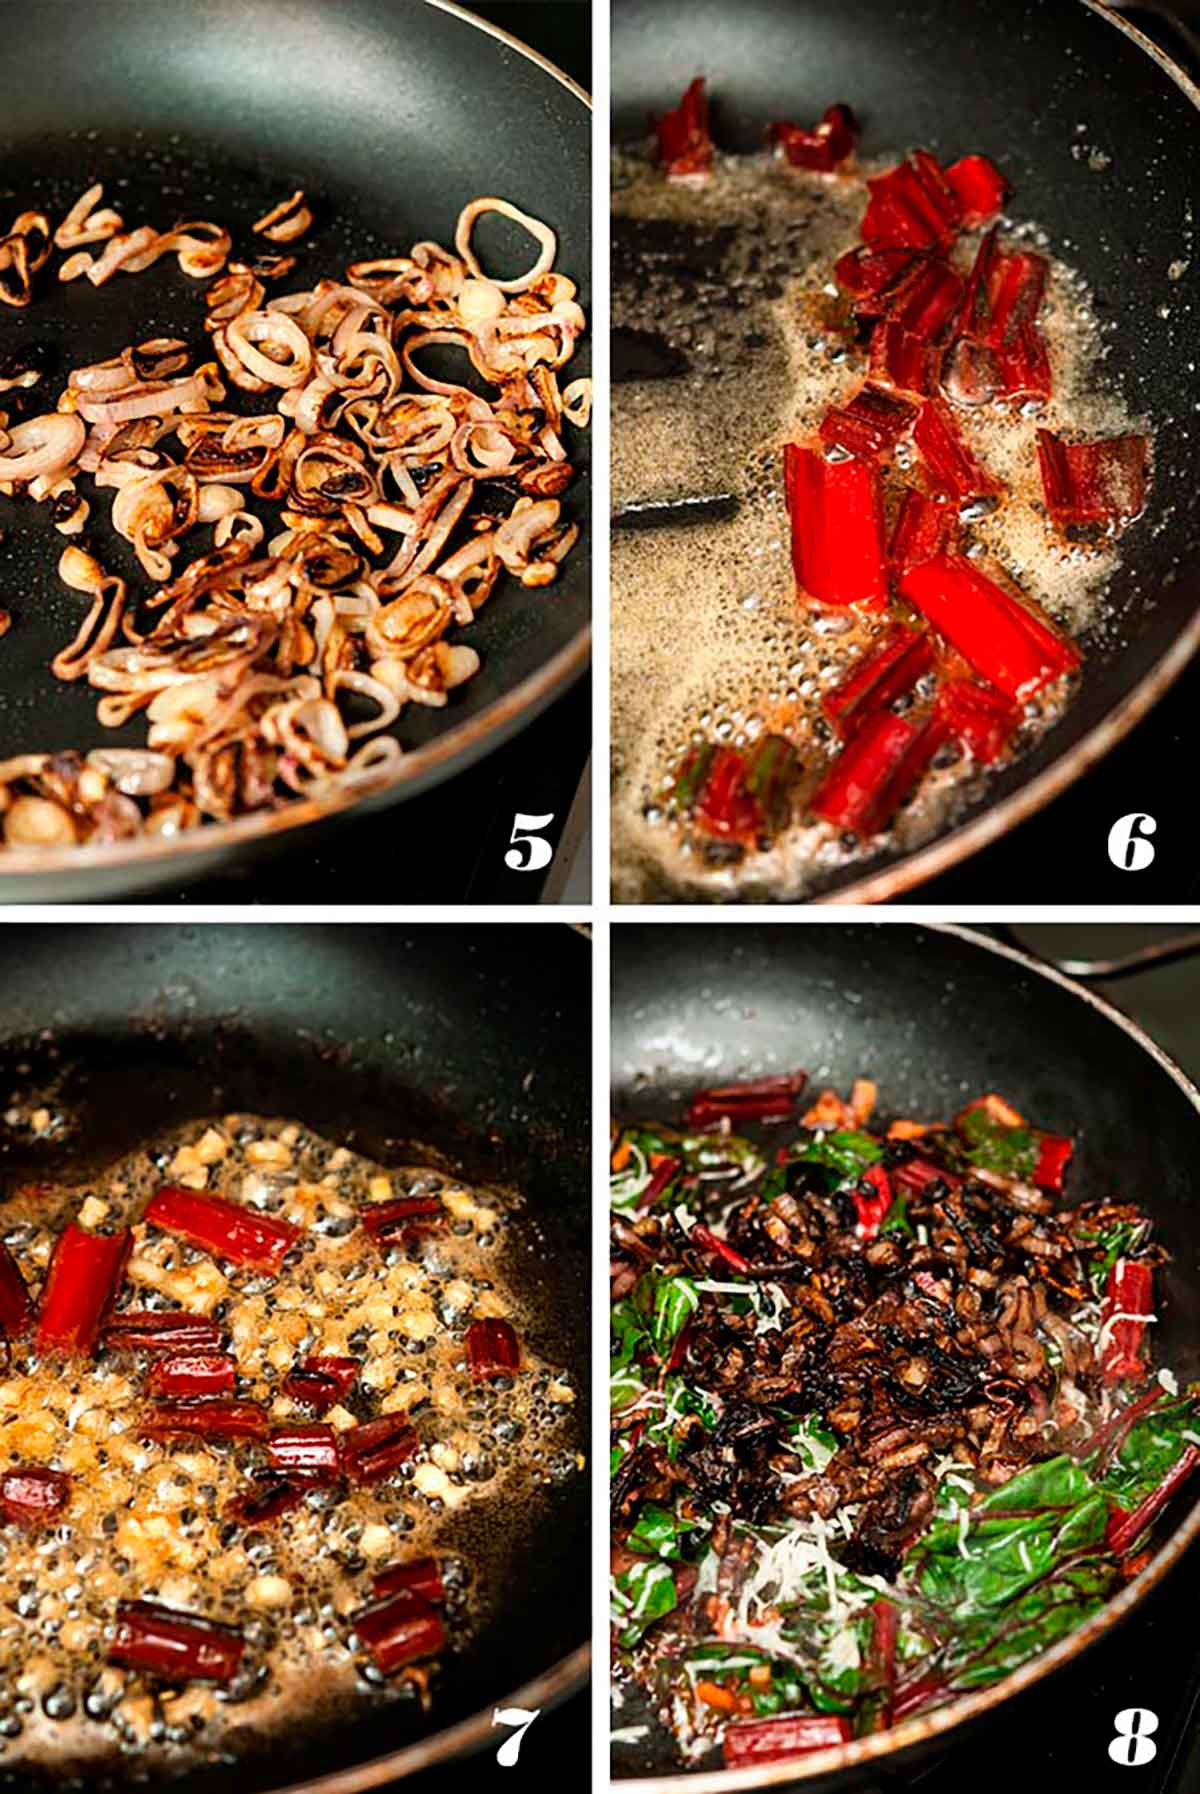 A collage of 4 numbered images showing how to caramelize shallots, and sauté chard.